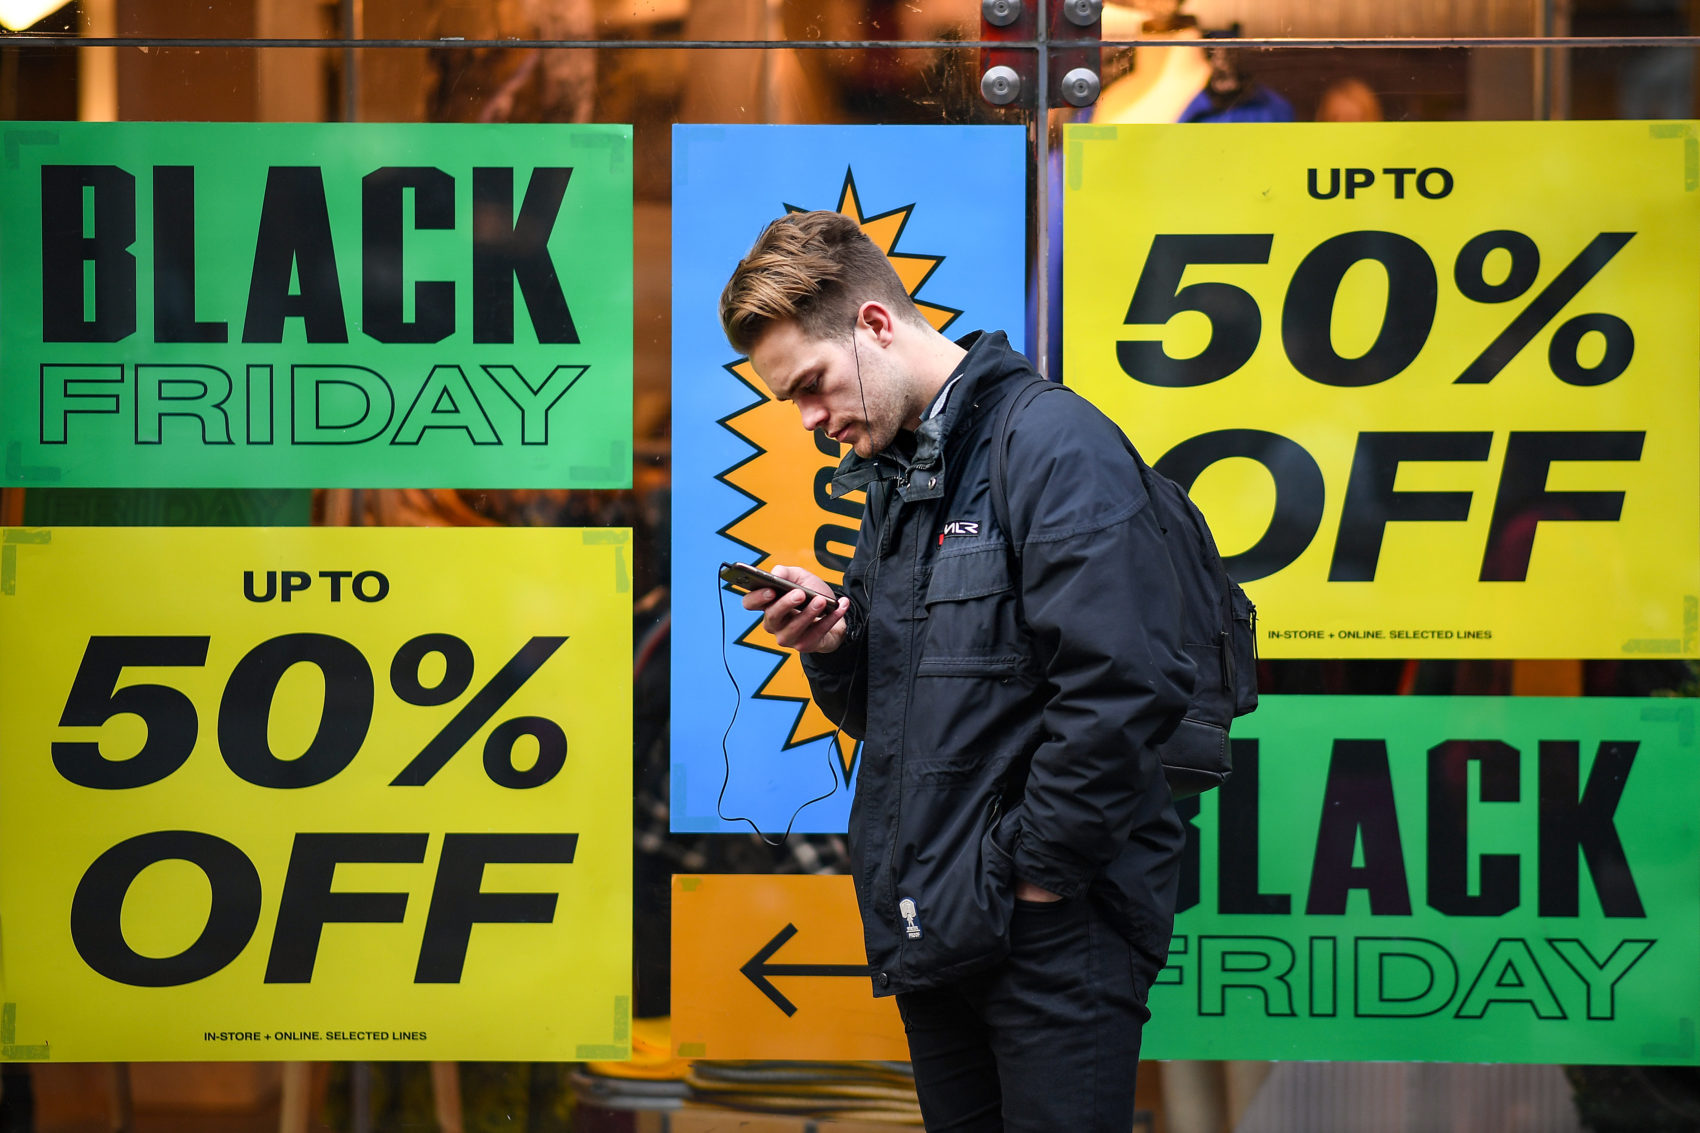 Black Friday 2018: UK deals are 'inferior' and Britons 'don't trust' shops